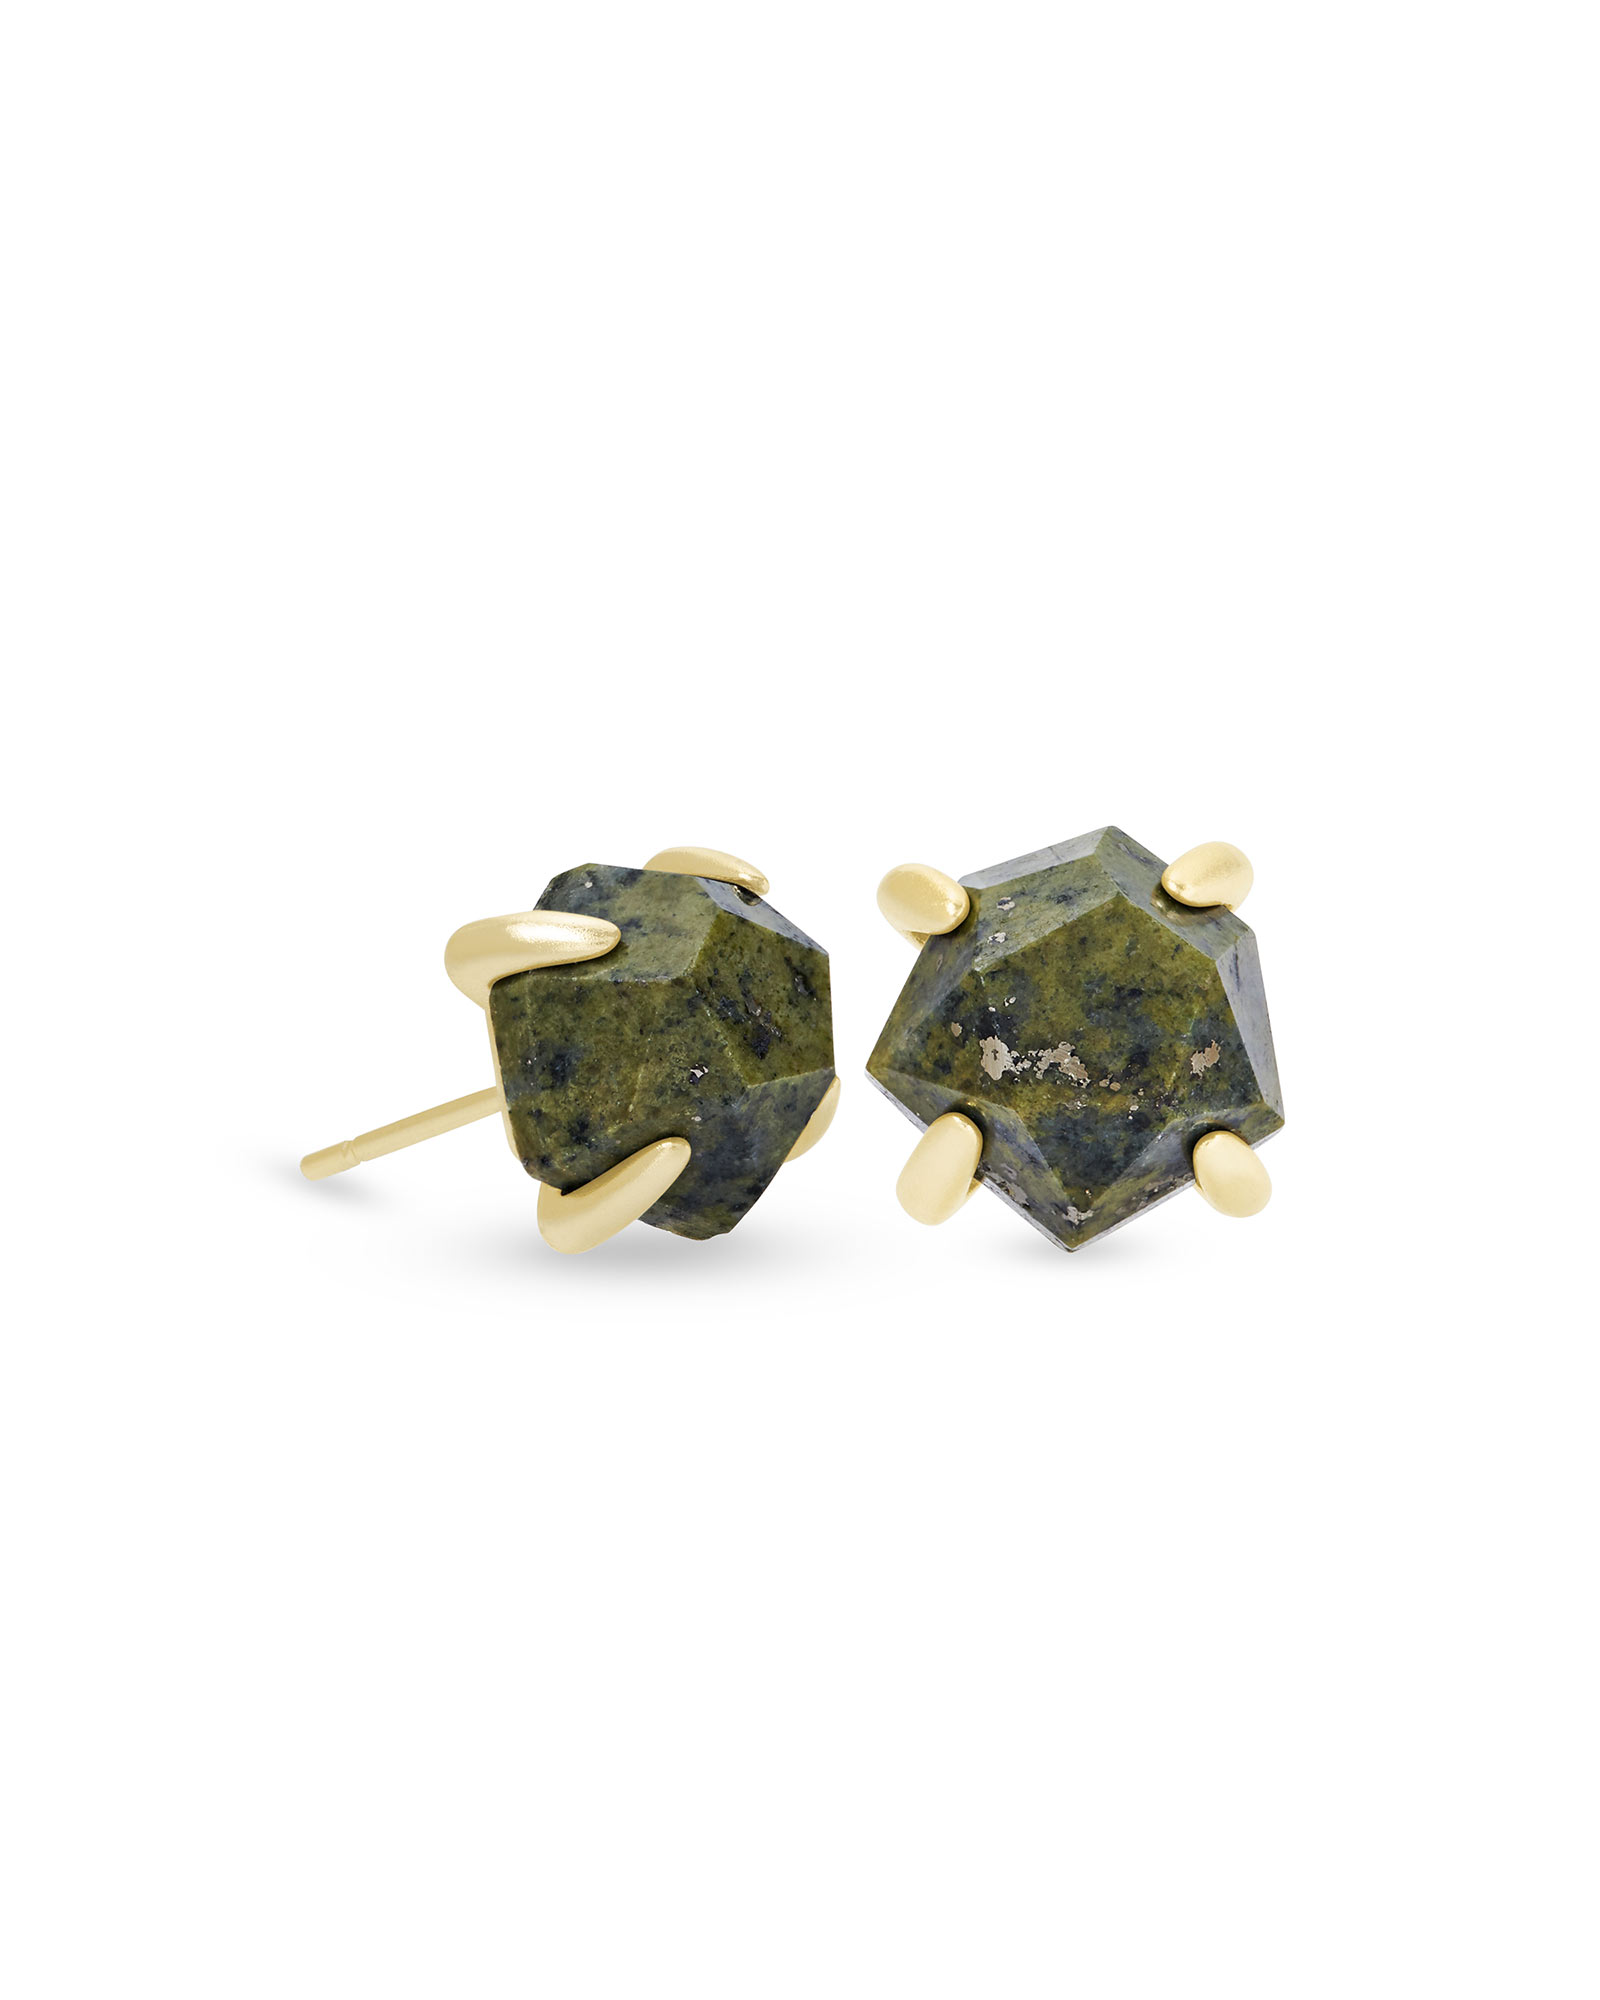 Ellms Gold Stud Earrings in Olive Epidote